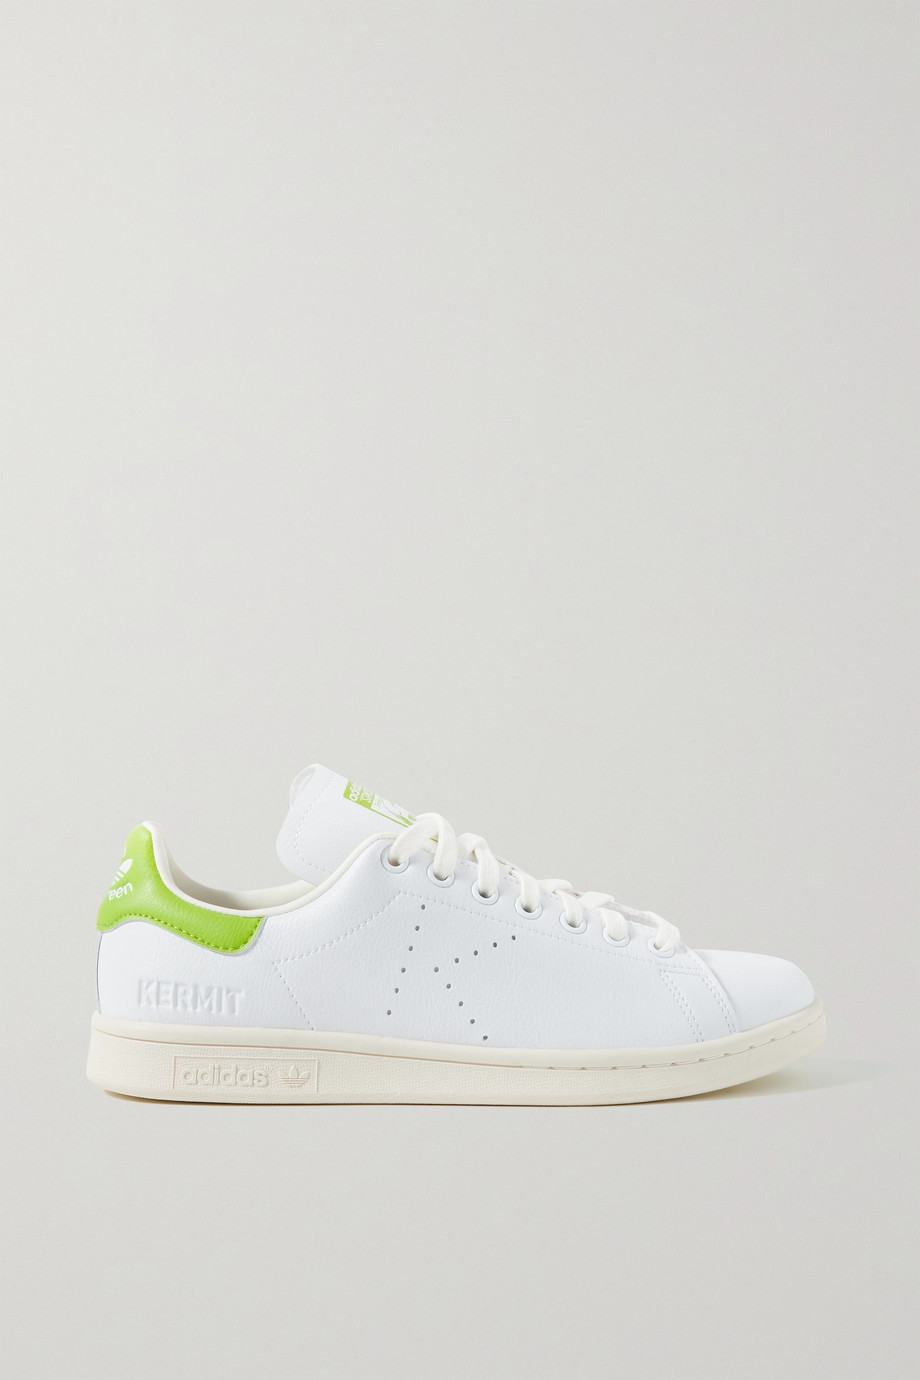 ADIDAS ORIGINALS + NET SUSTAIN + Kermit the Frog Stan Smith Primegreen sneakers